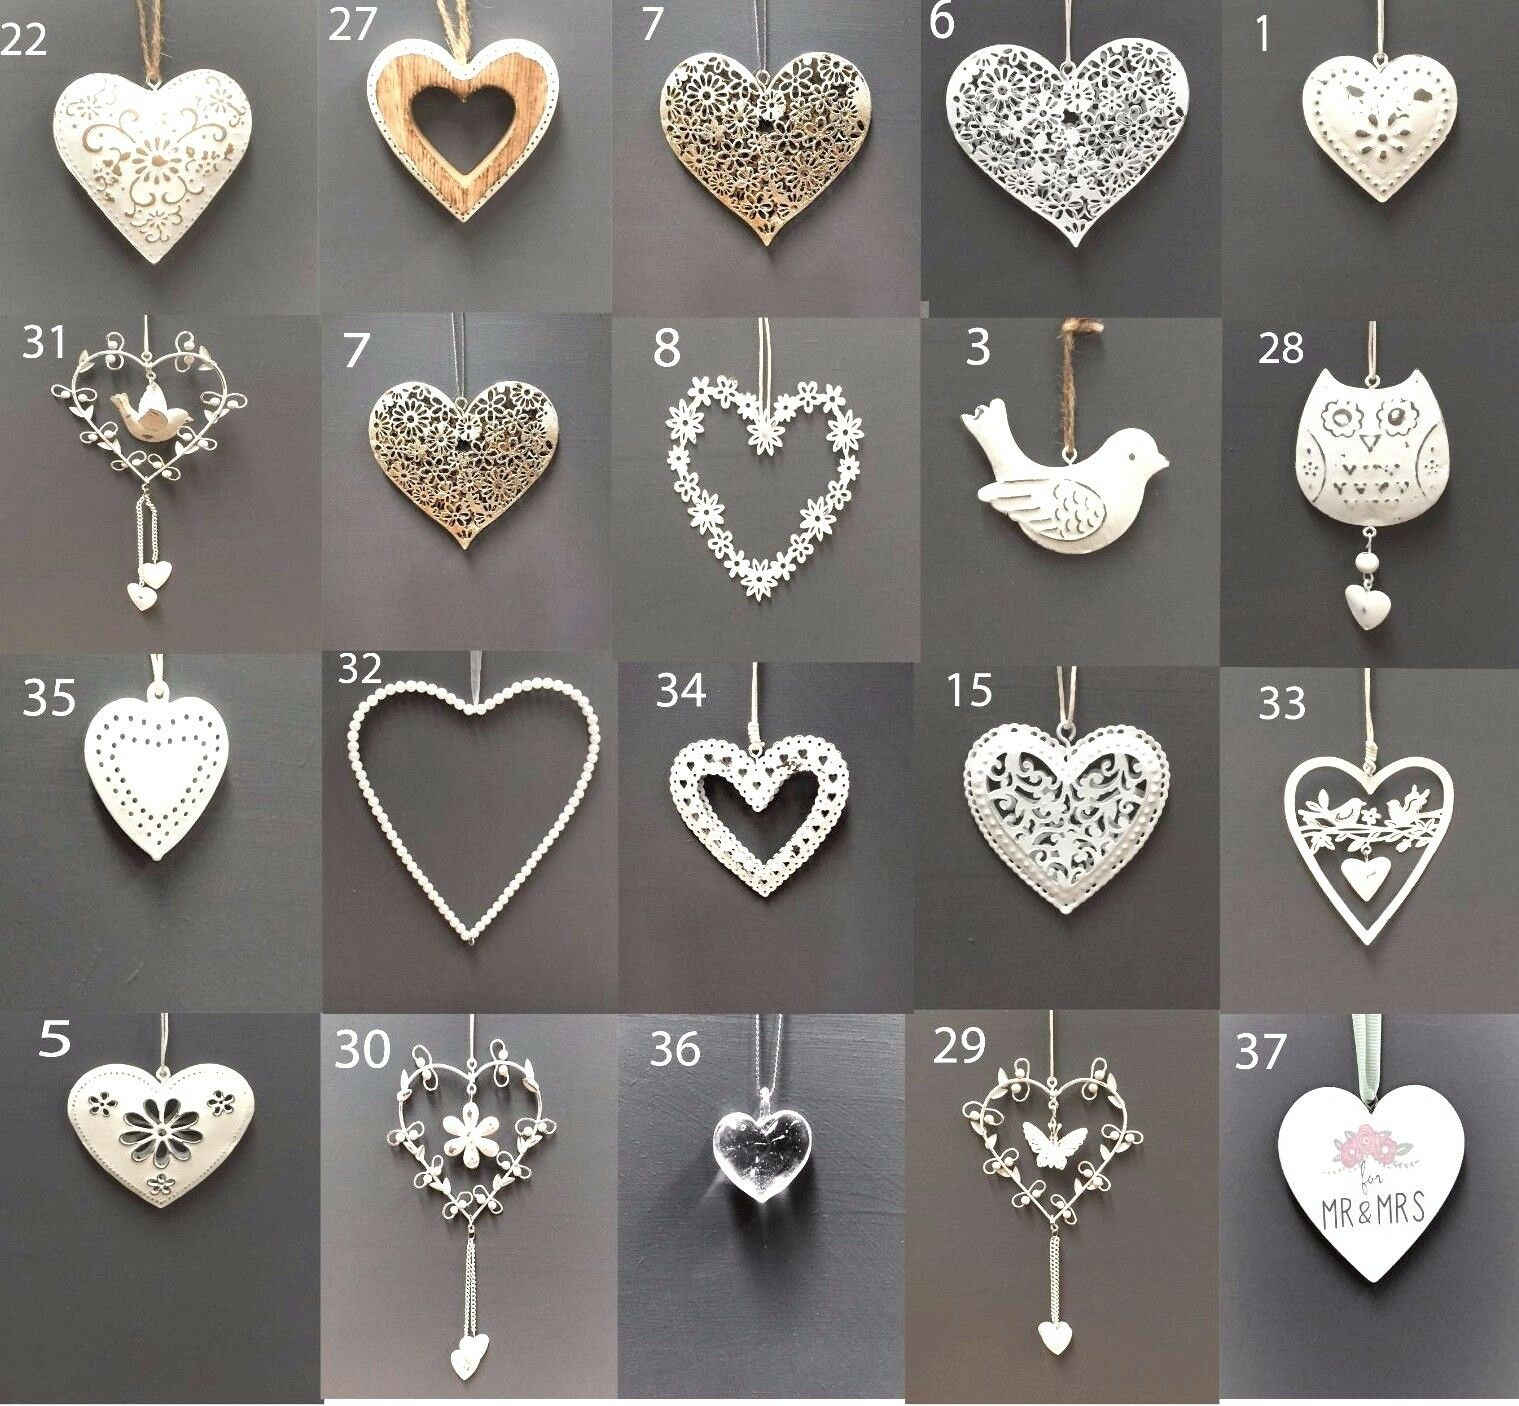 Home Decoration - Vintage Style Shabby & Chic Wedding Hanging Hearts Heart Home Decoration Gift